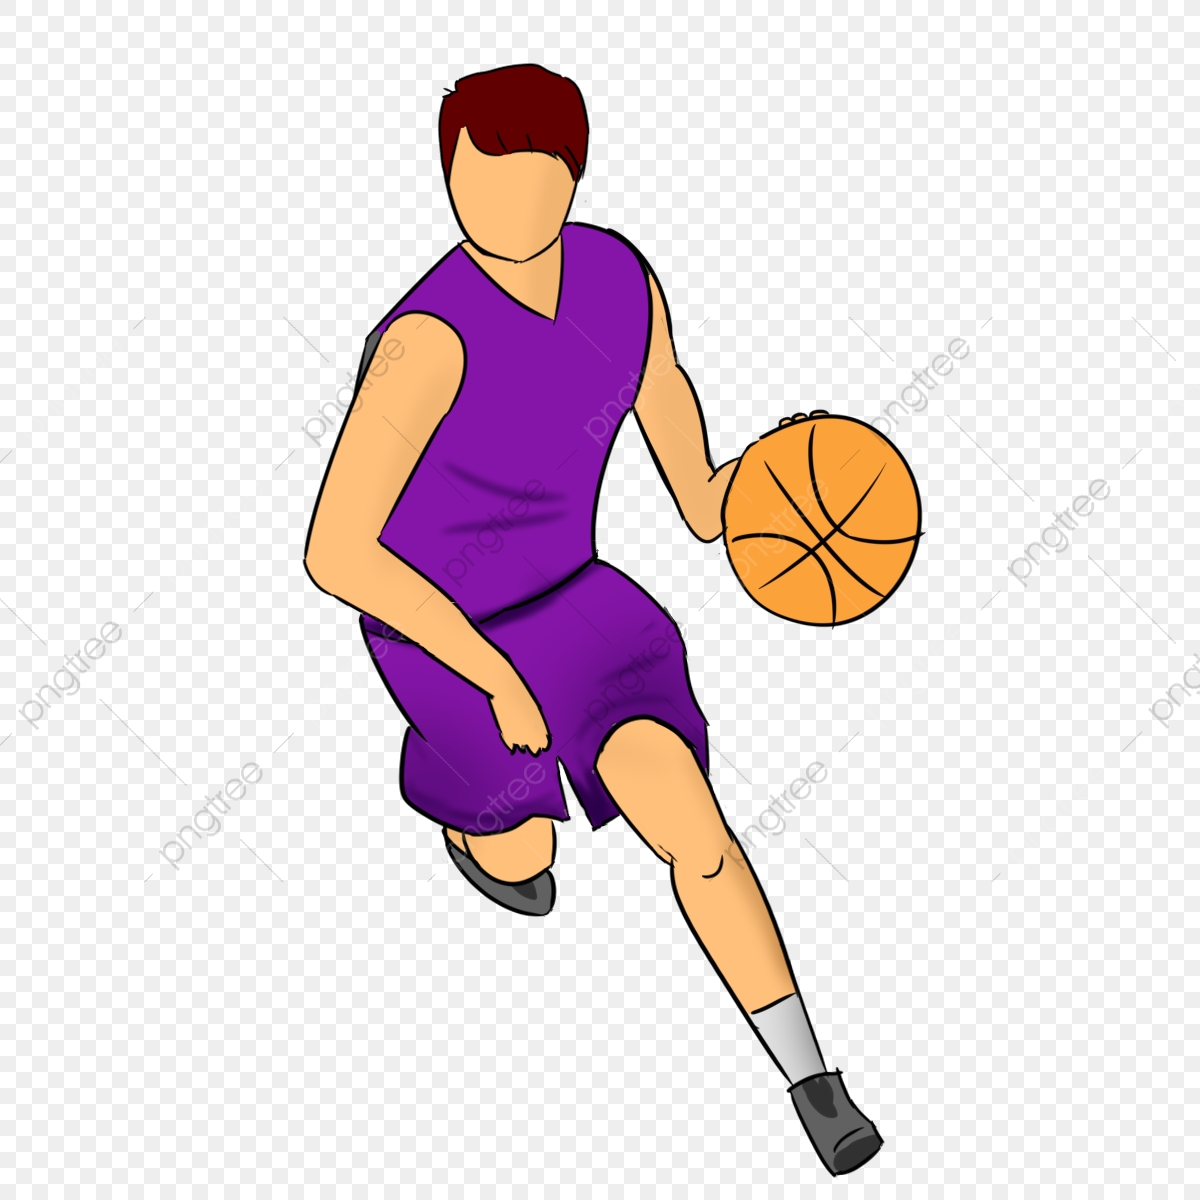 Cheap Basketball Hoops - Basketball Hoop Clear Background, HD Png Download  - kindpng